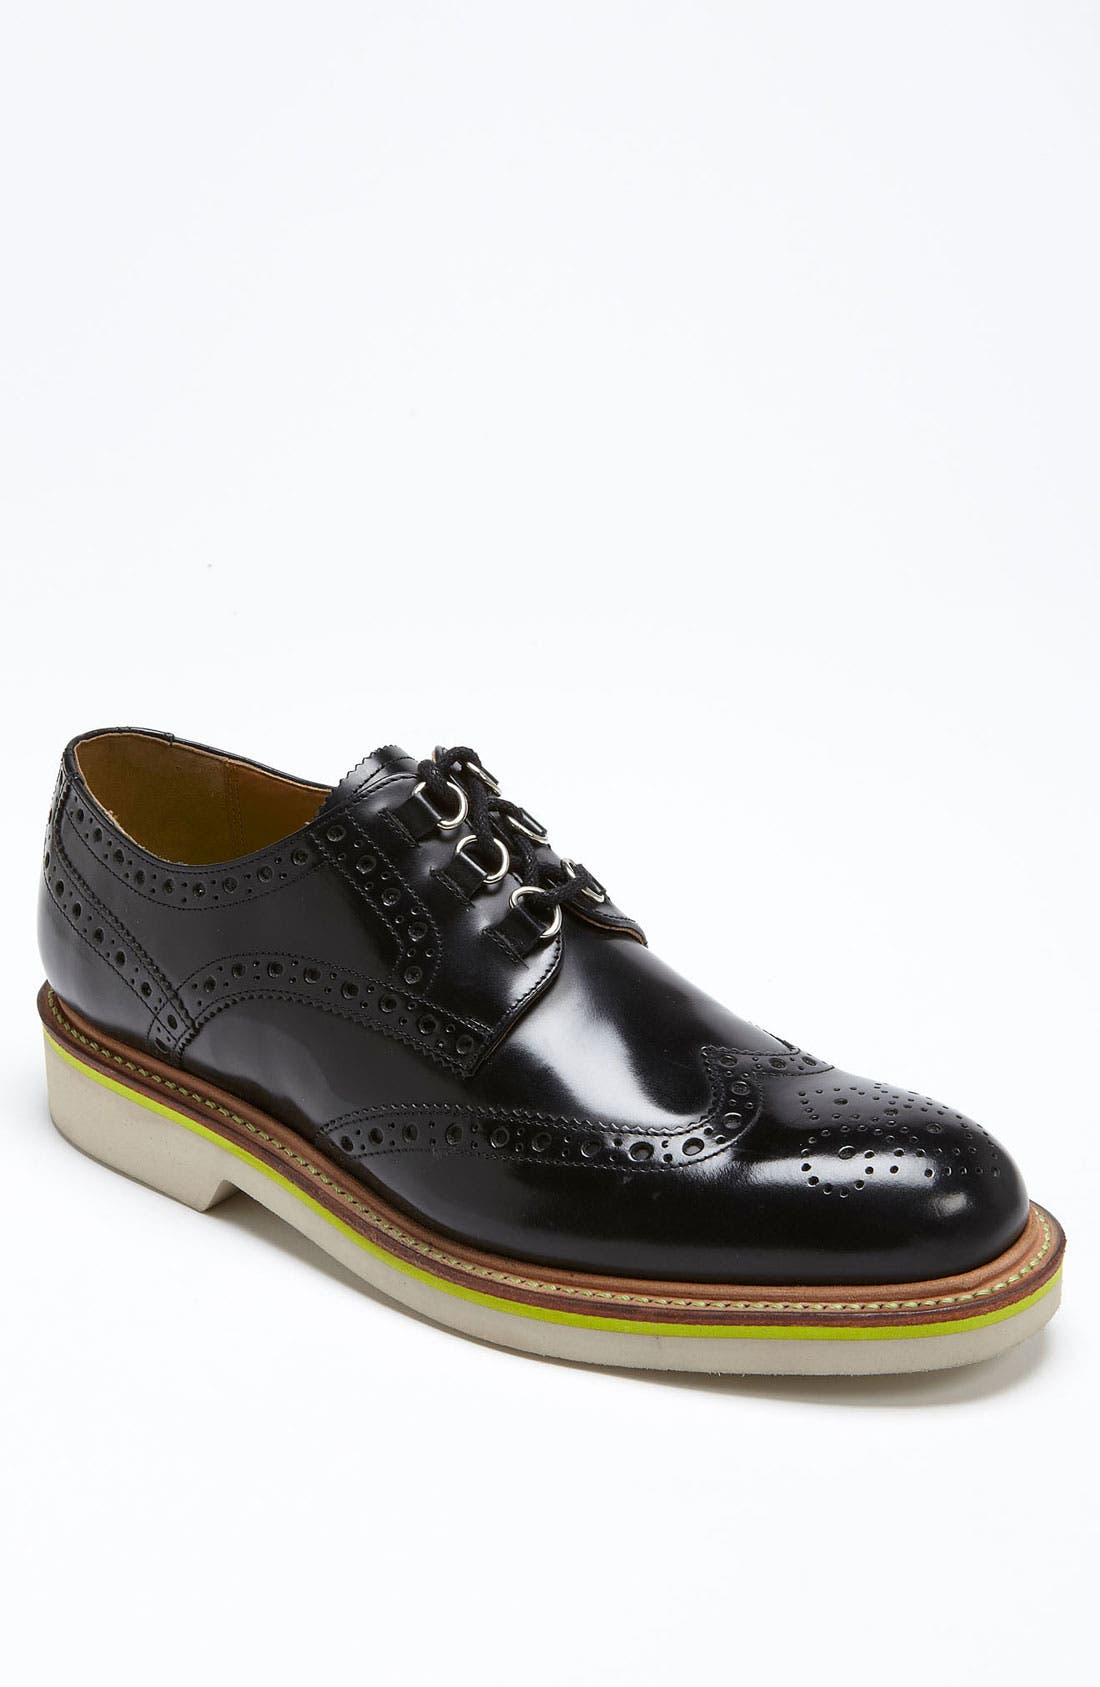 Alternate Image 1 Selected - Oliver Sweeney 'Albany' Wingtip